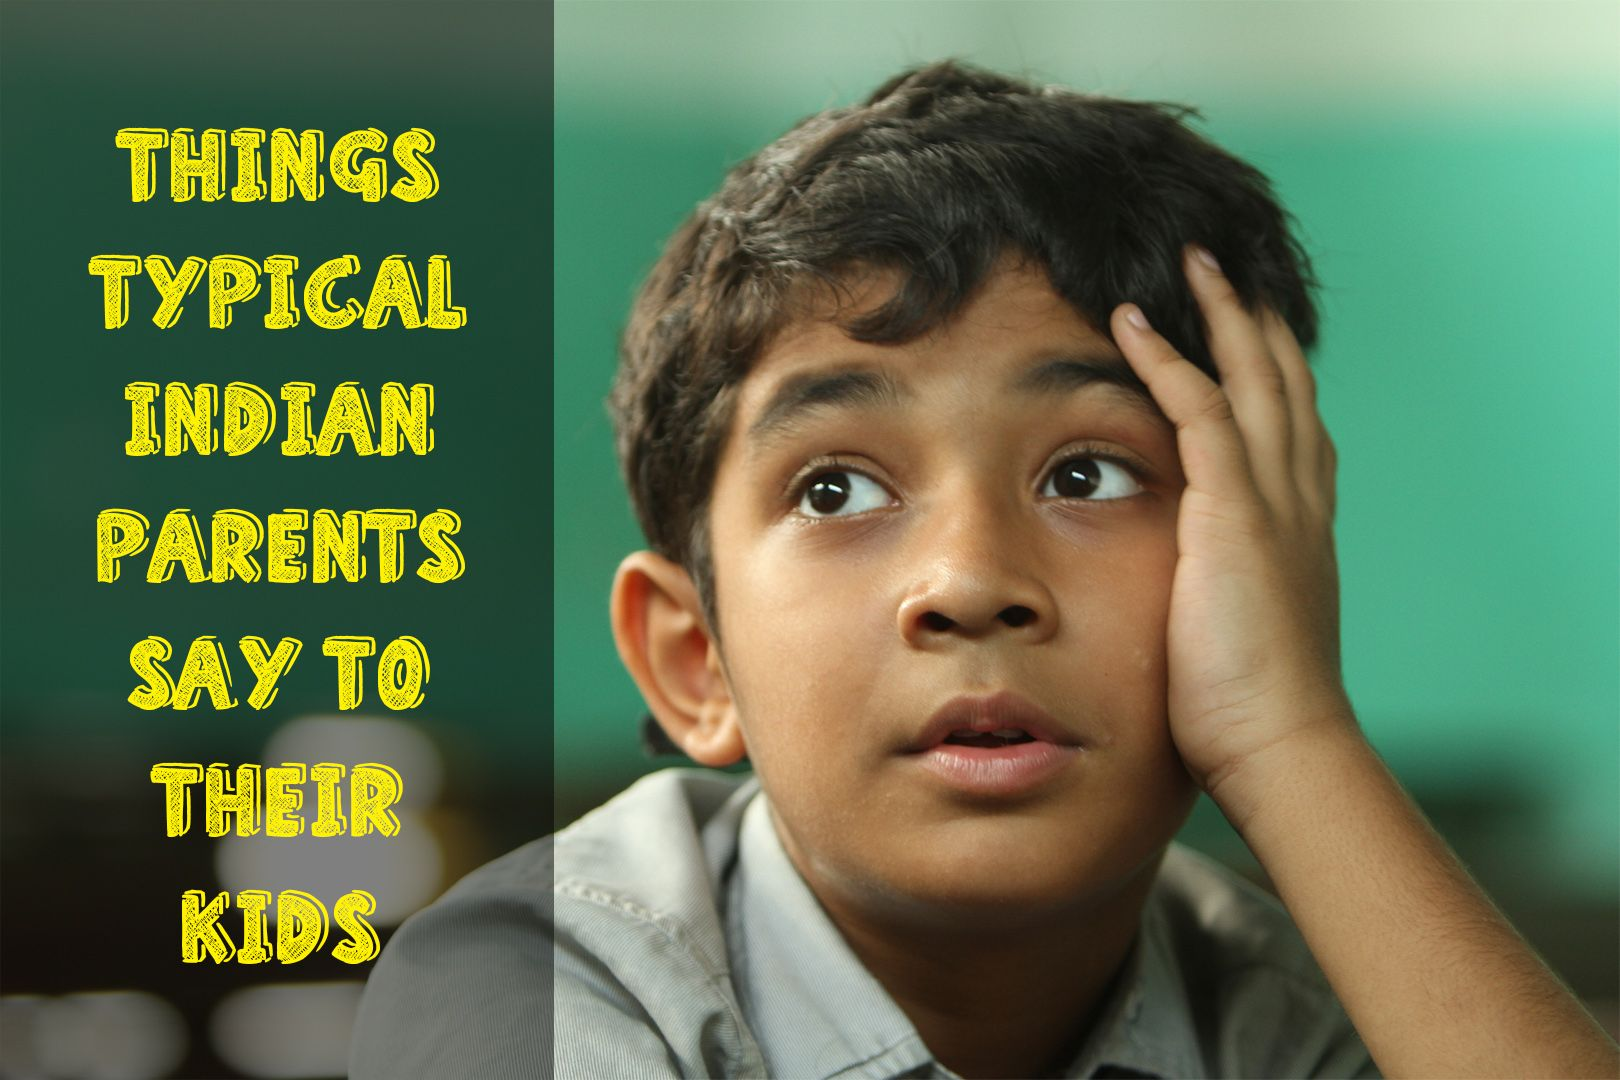 Things Typical Indian Parents say to their Kids